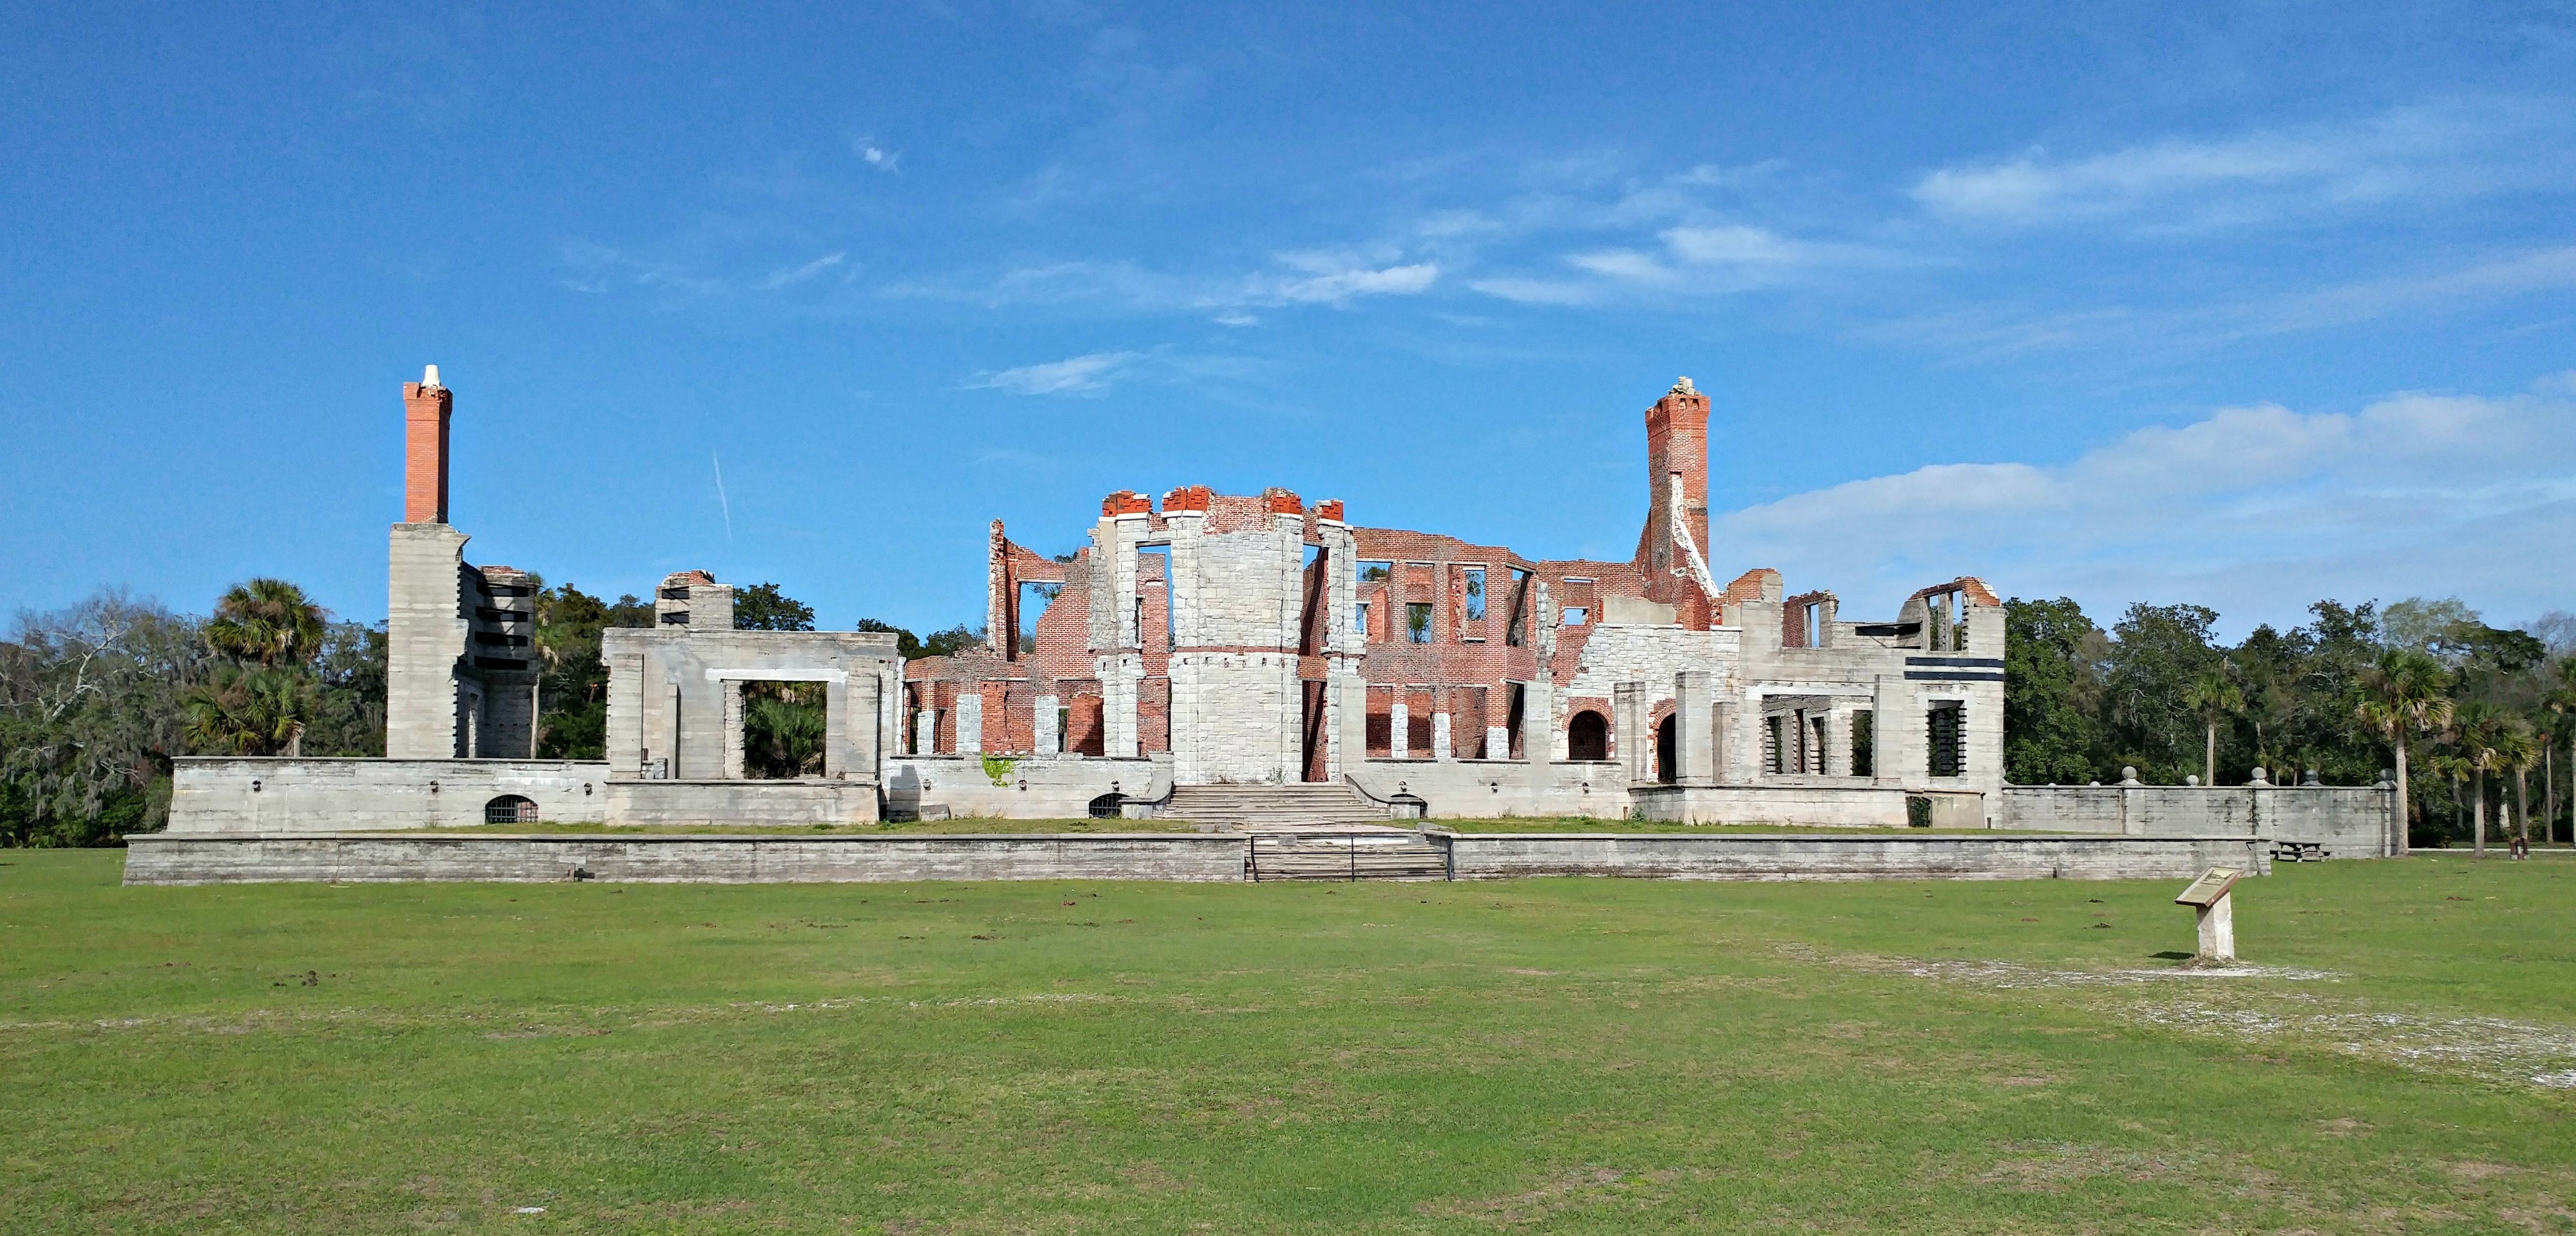 The ruins of Dungeness on Georgia's Cumberland Island are impressive, even in their devastation.